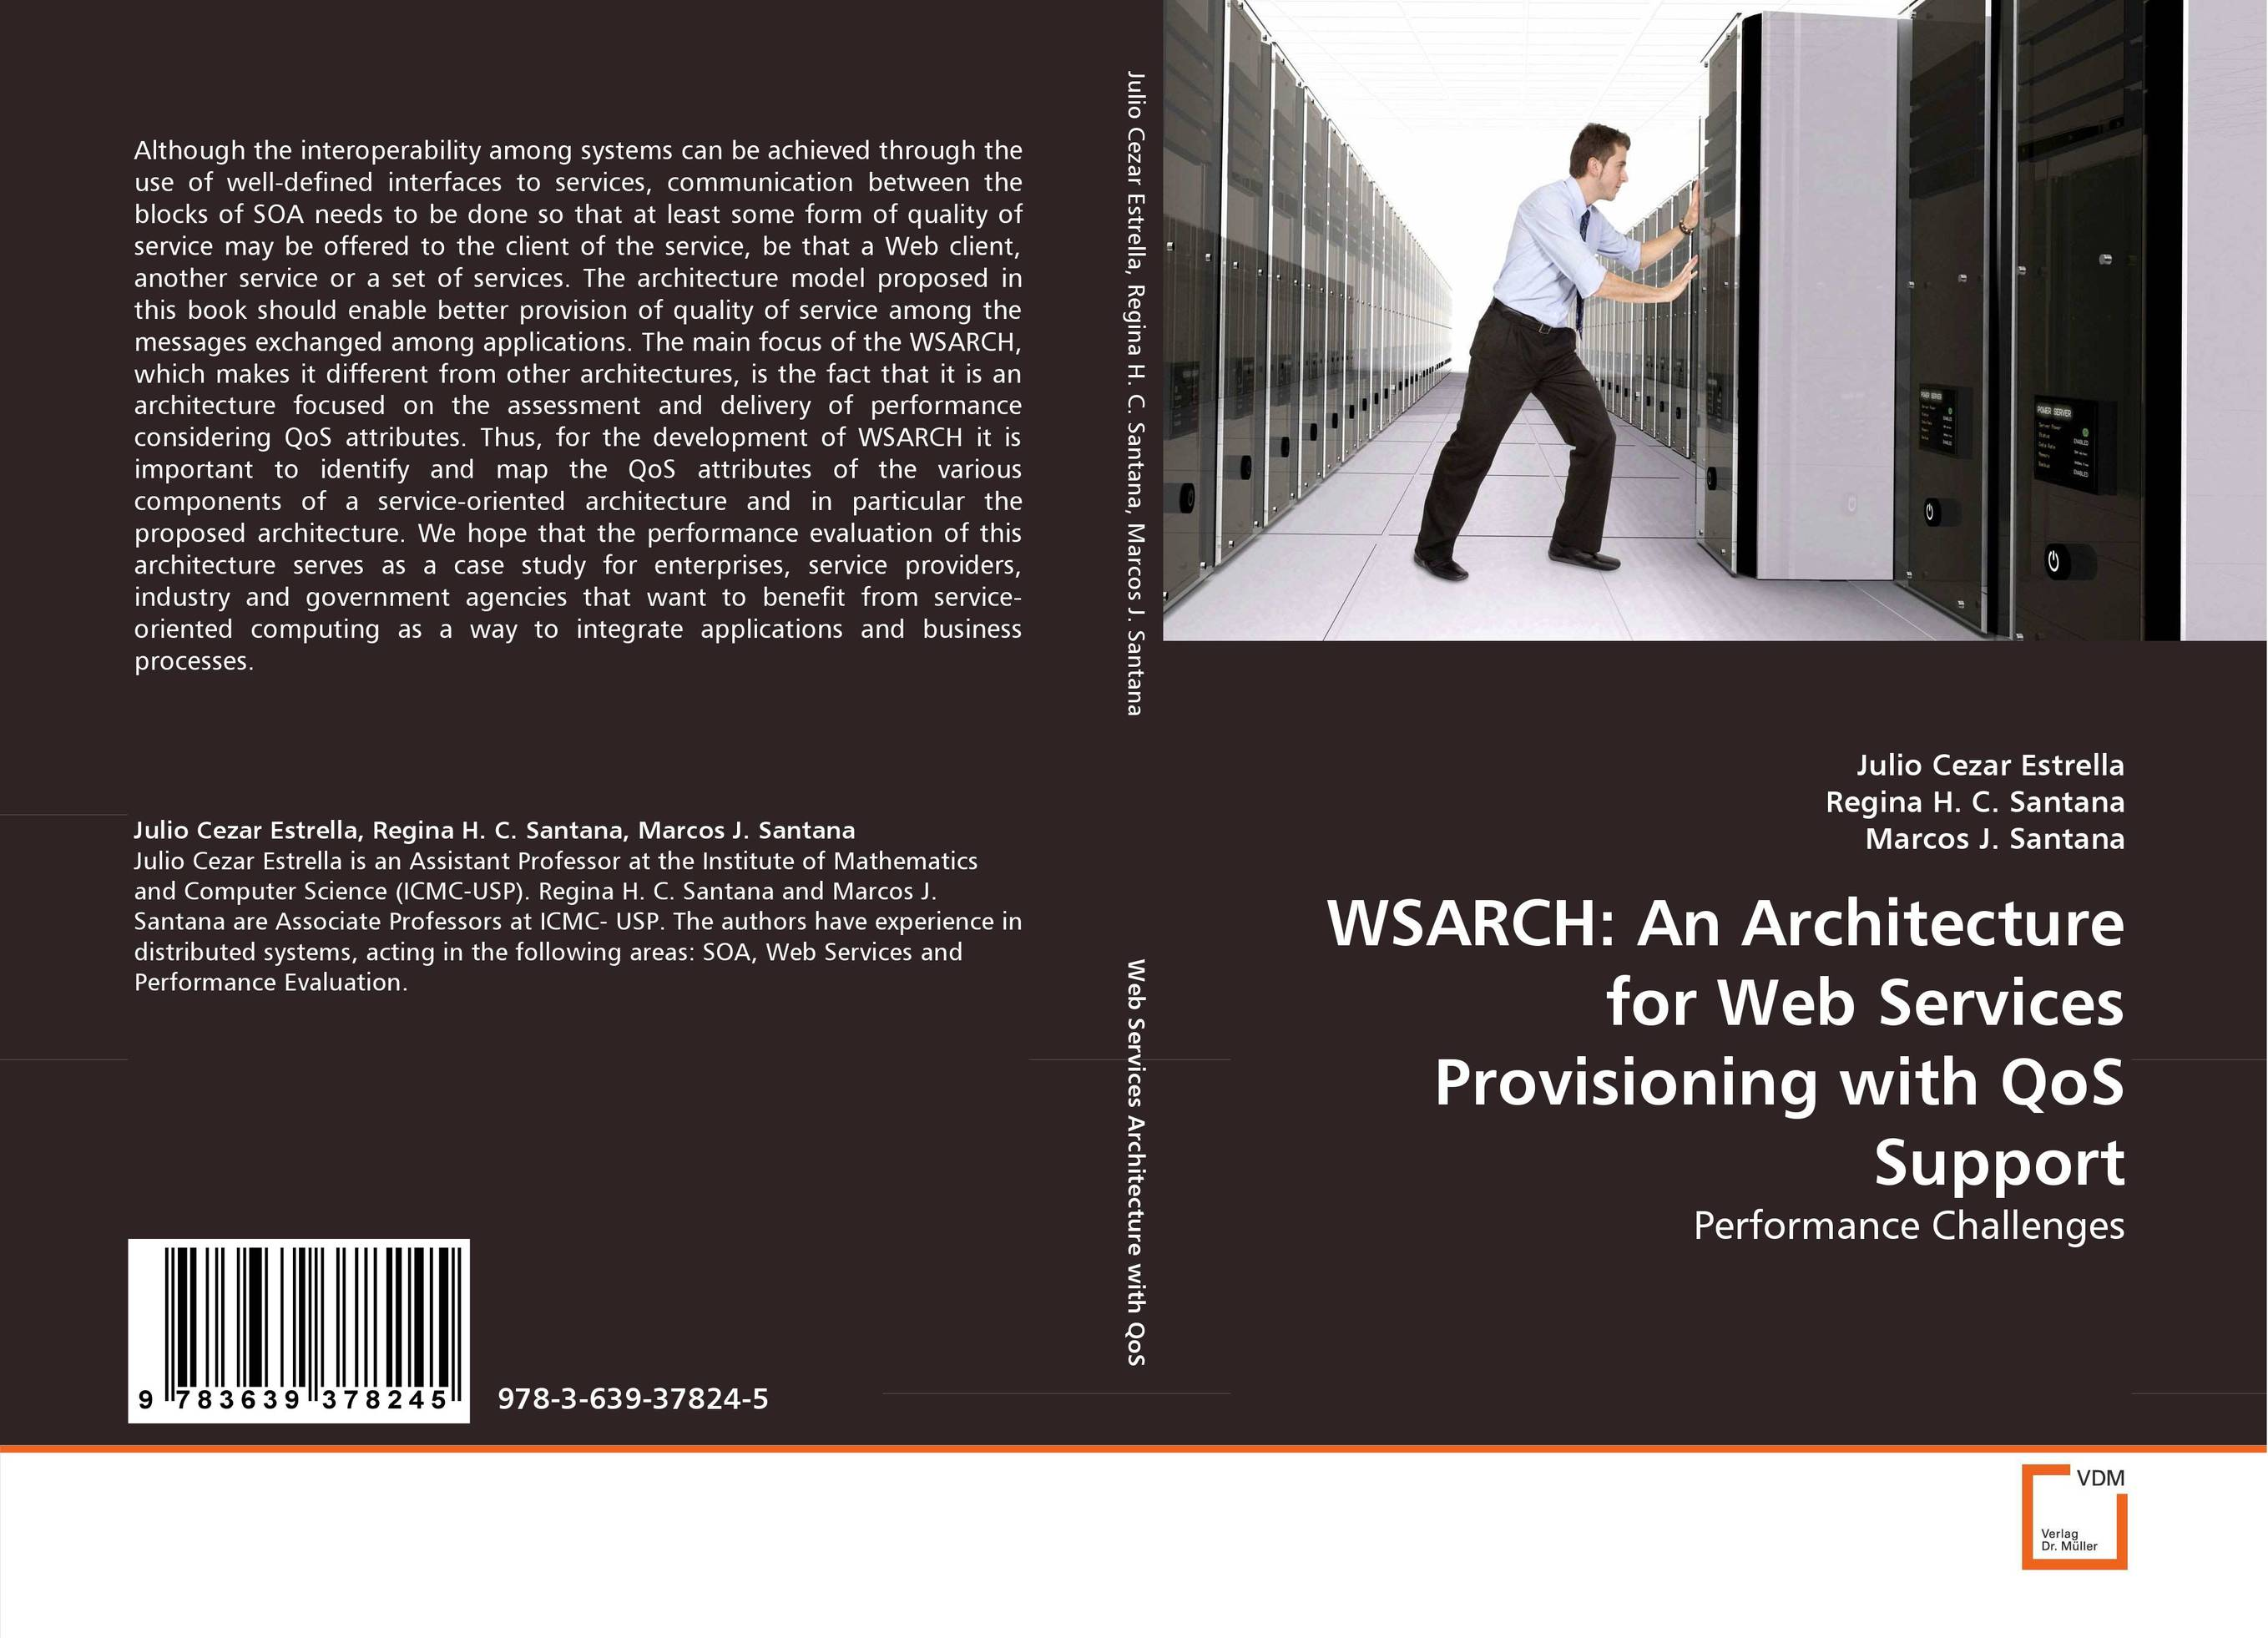 WSARCH: An Architecture for Web Services Provisioning with QoS Support migration of legacy system to service oriented architecture soa